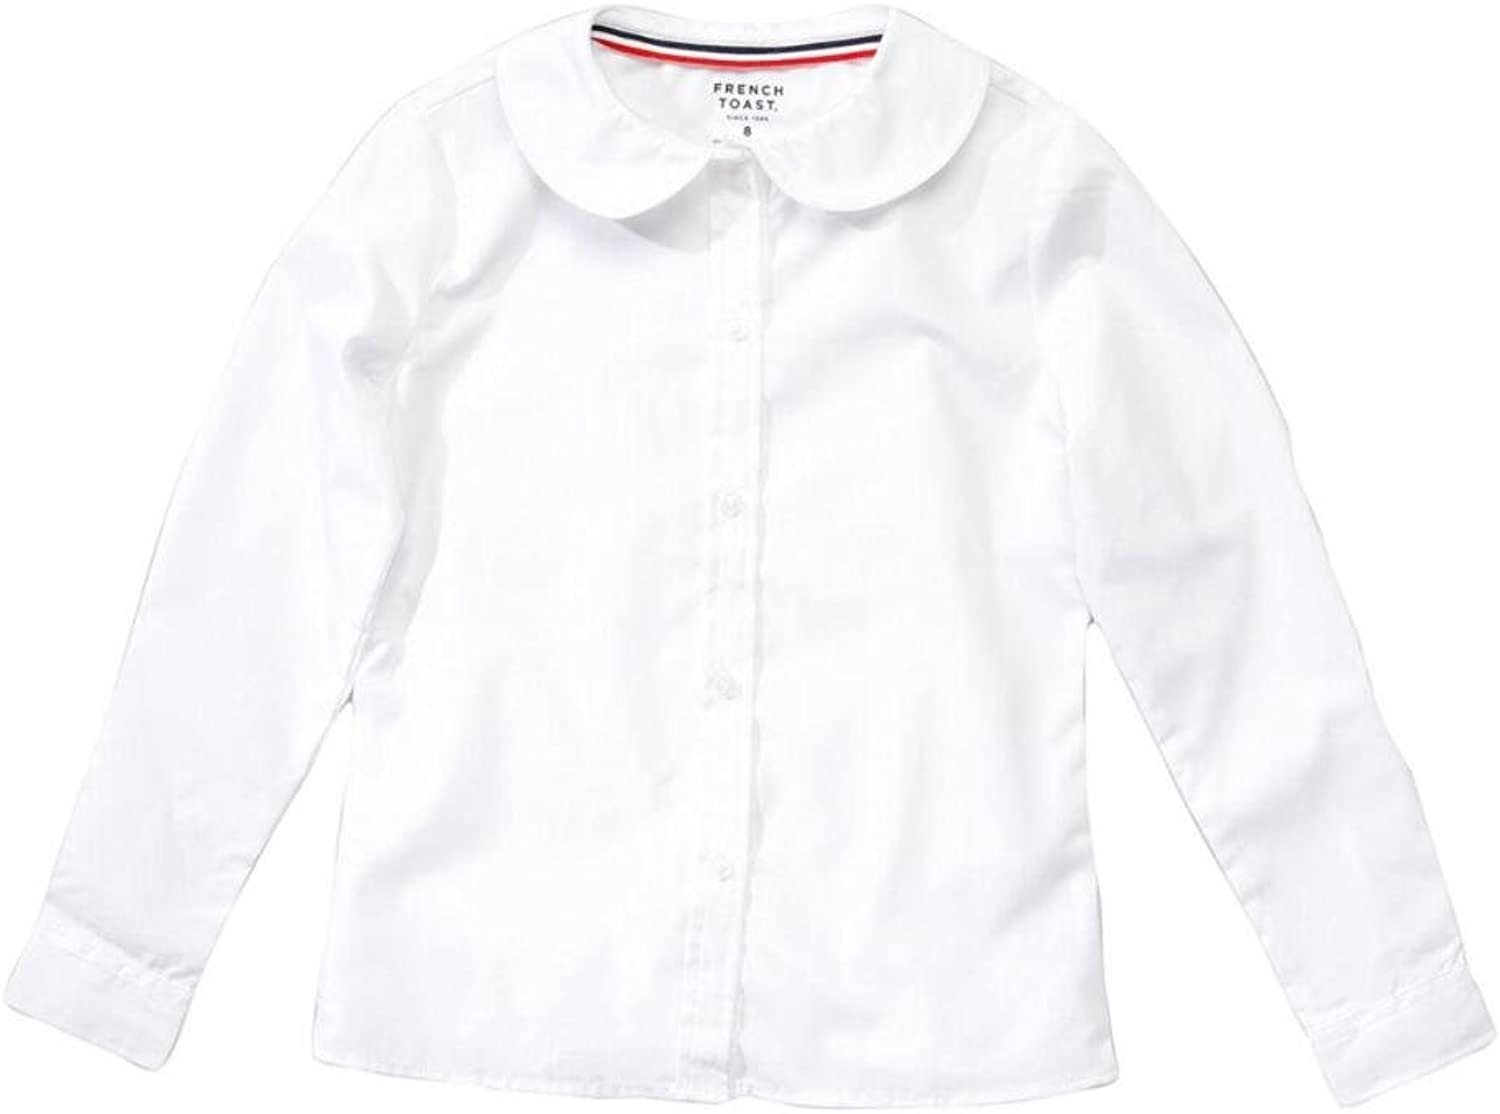 French Toast School Uniform L S Peter Pan Free shipping on posting reviews Ranking TOP8 Blouse - 7 20 Sizes